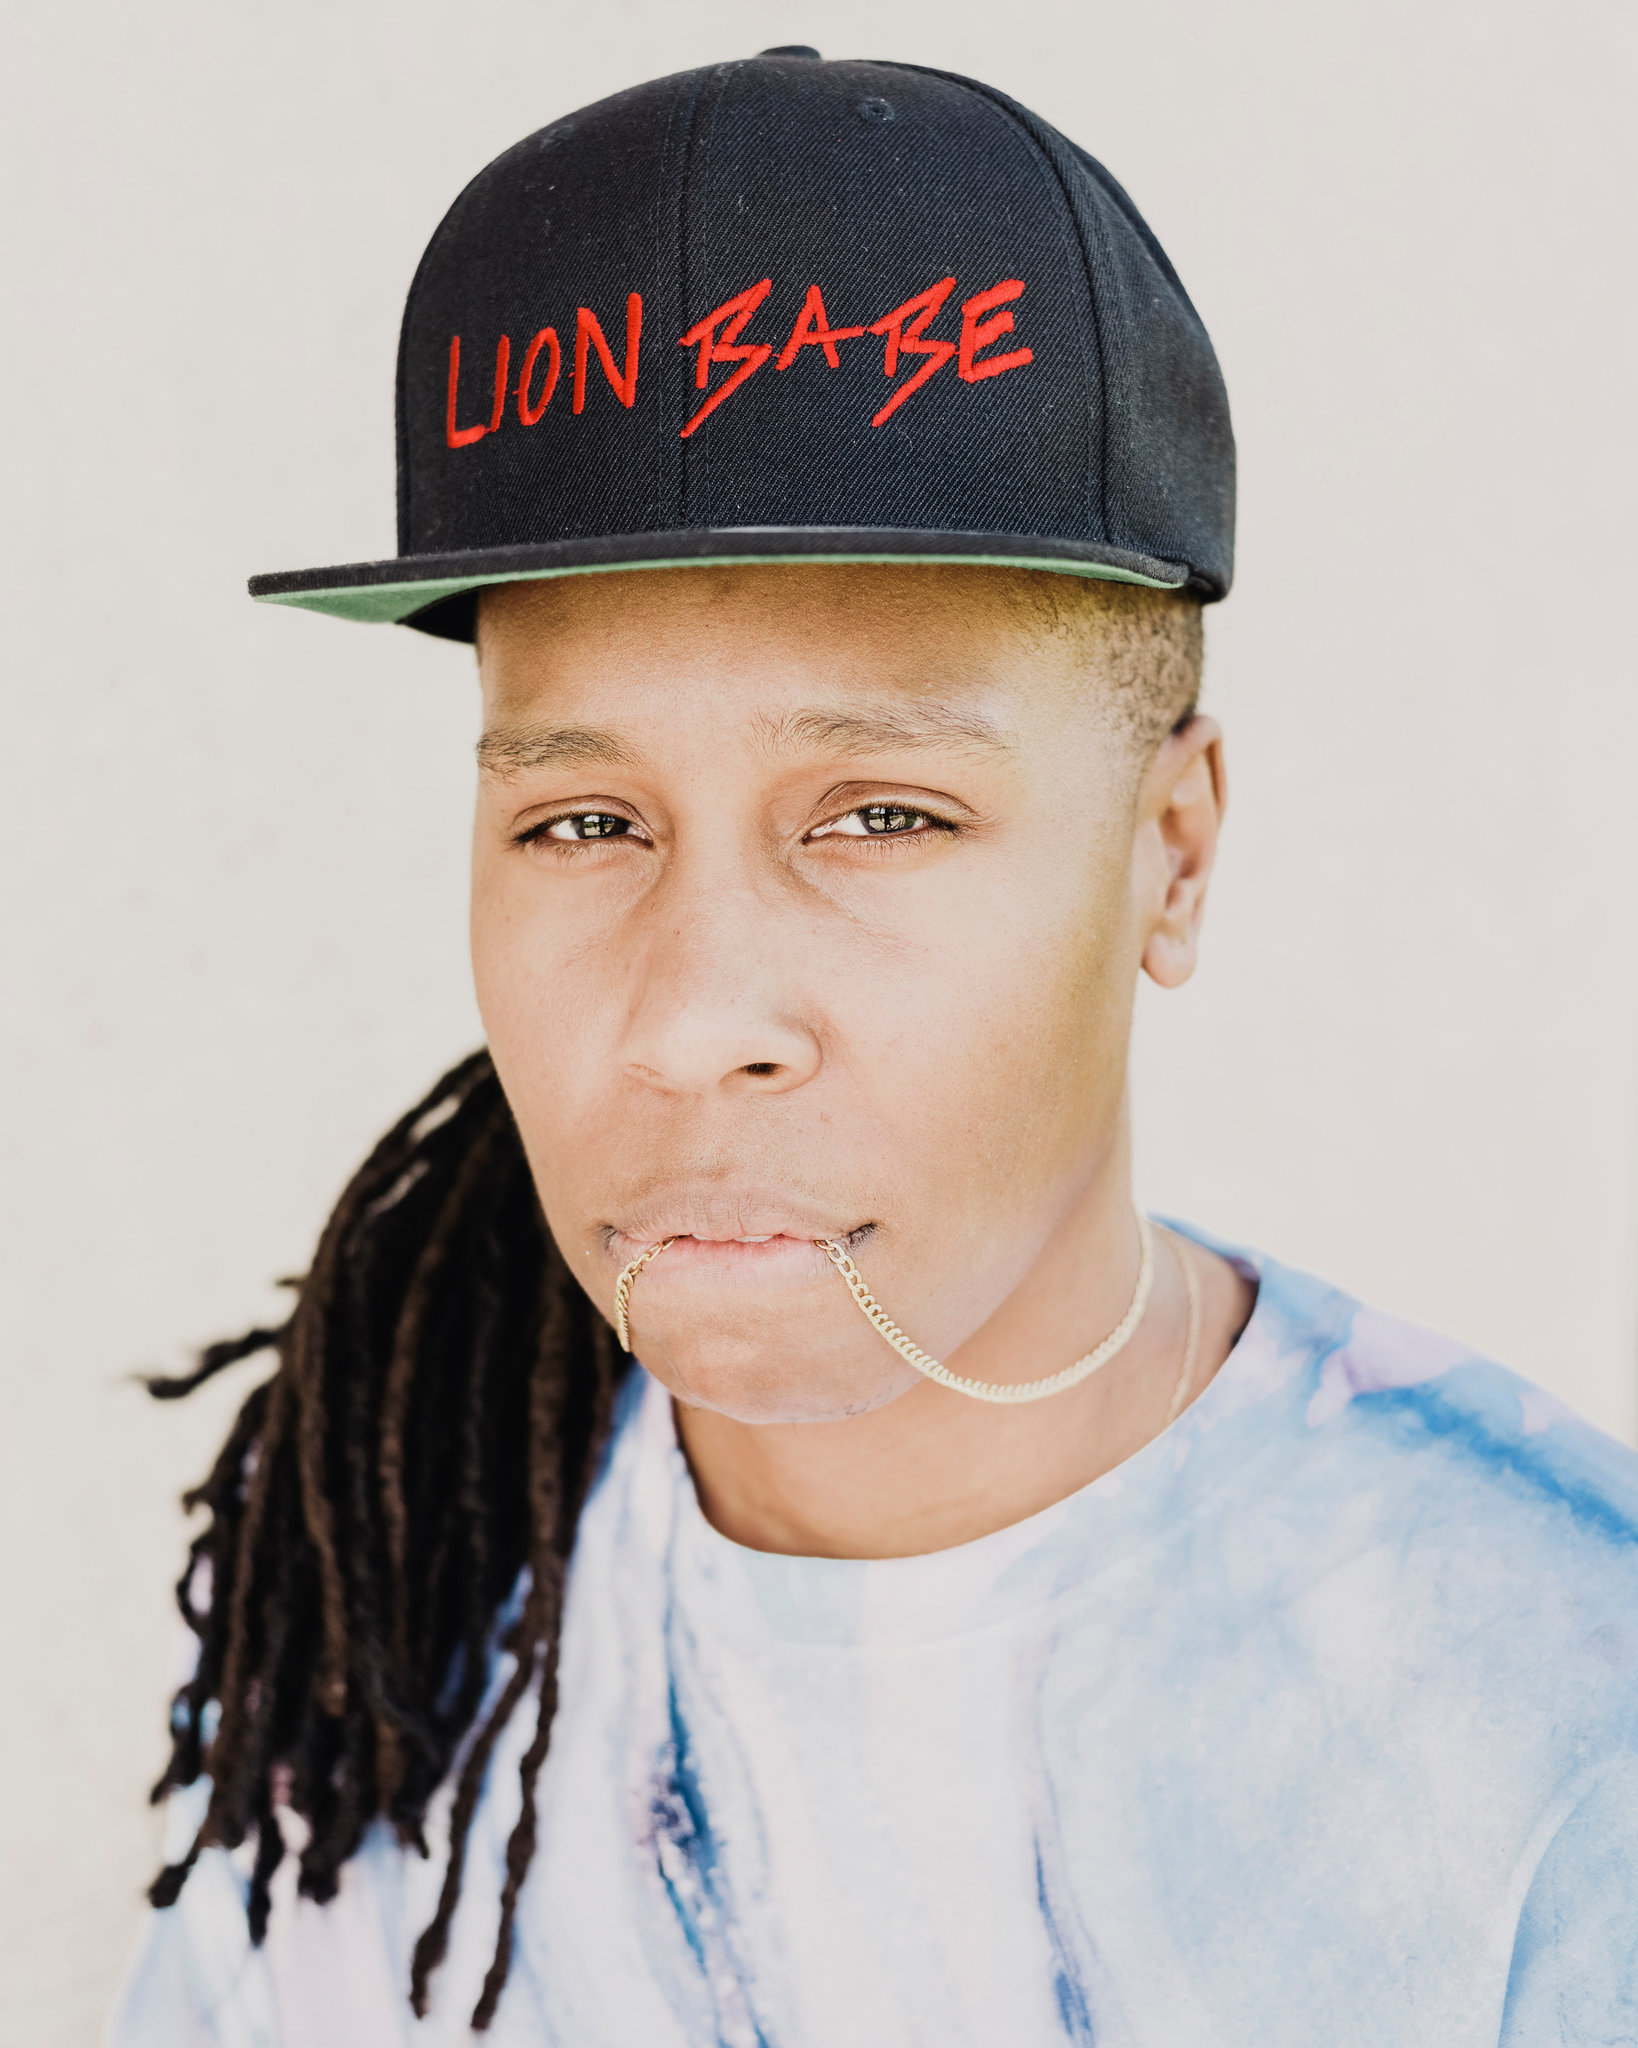 """Whitten Sabbatini/New York Times  Lena Waithe Heads Home in Search of the Real Chicago  Profile for  The New York Times  on """"The Chi"""" creator and actress Lena Waithe"""